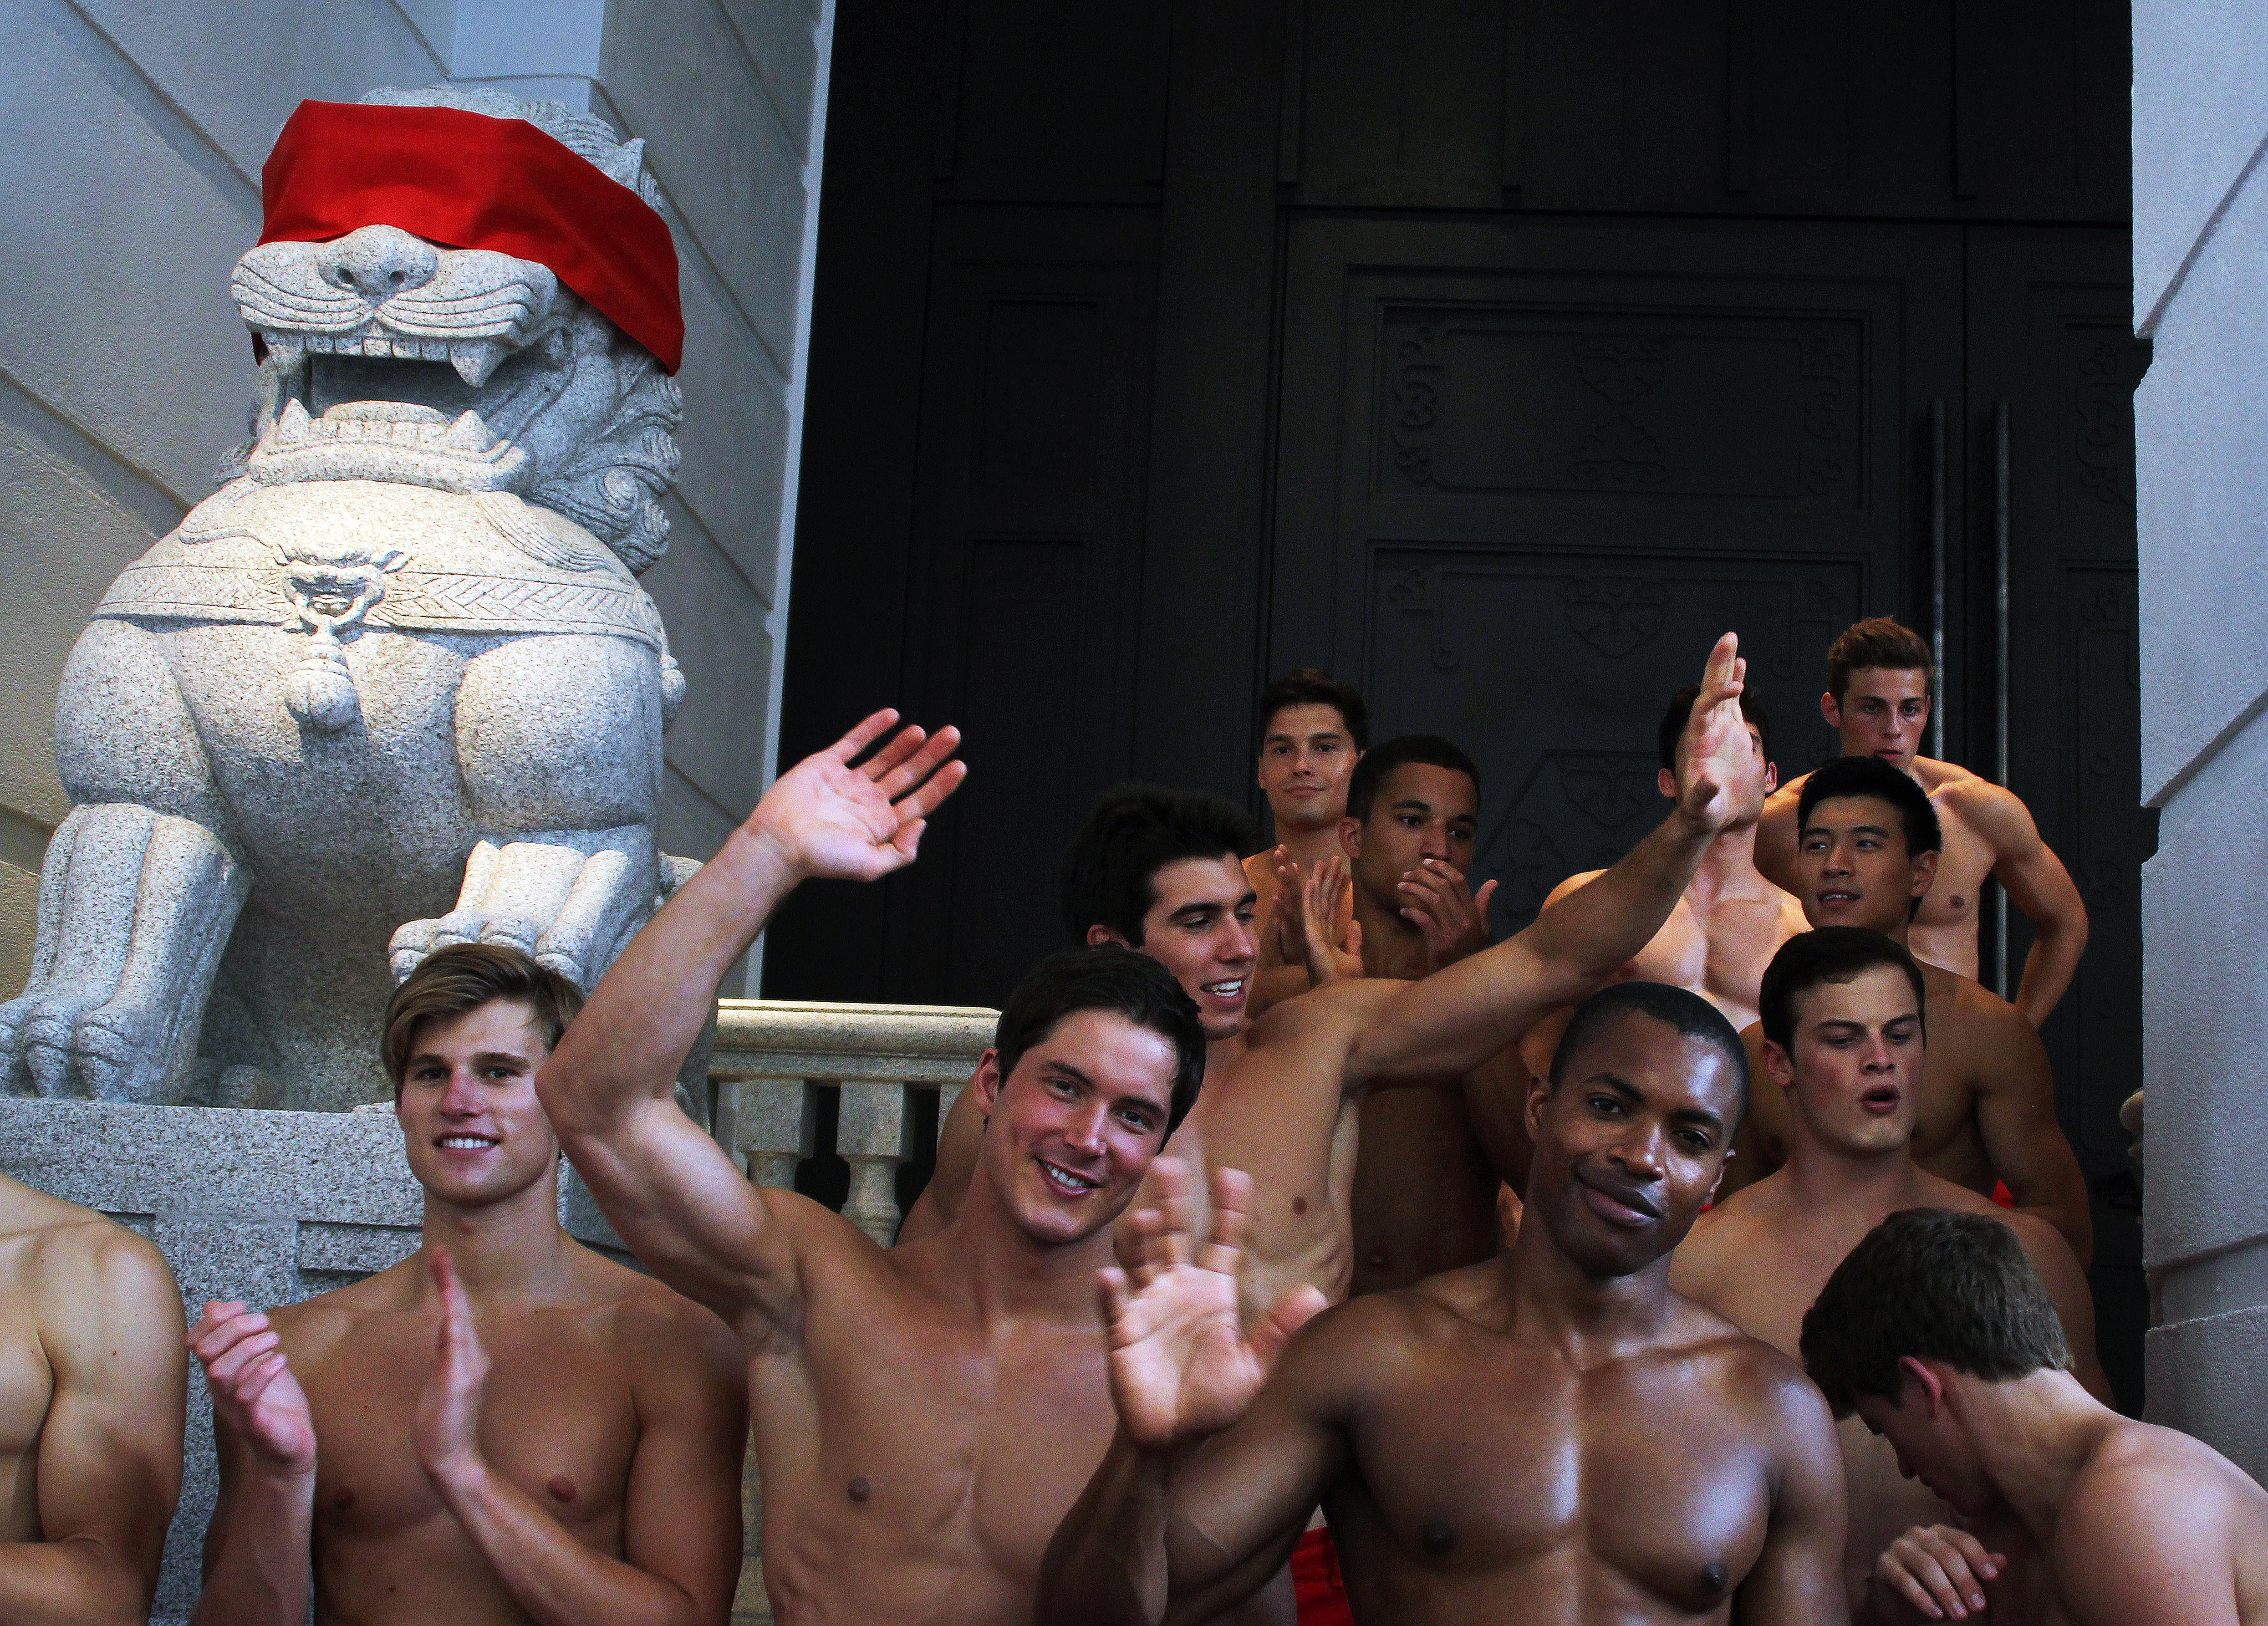 Abercrombie and Fitch ditches shirtless models - NZ Herald